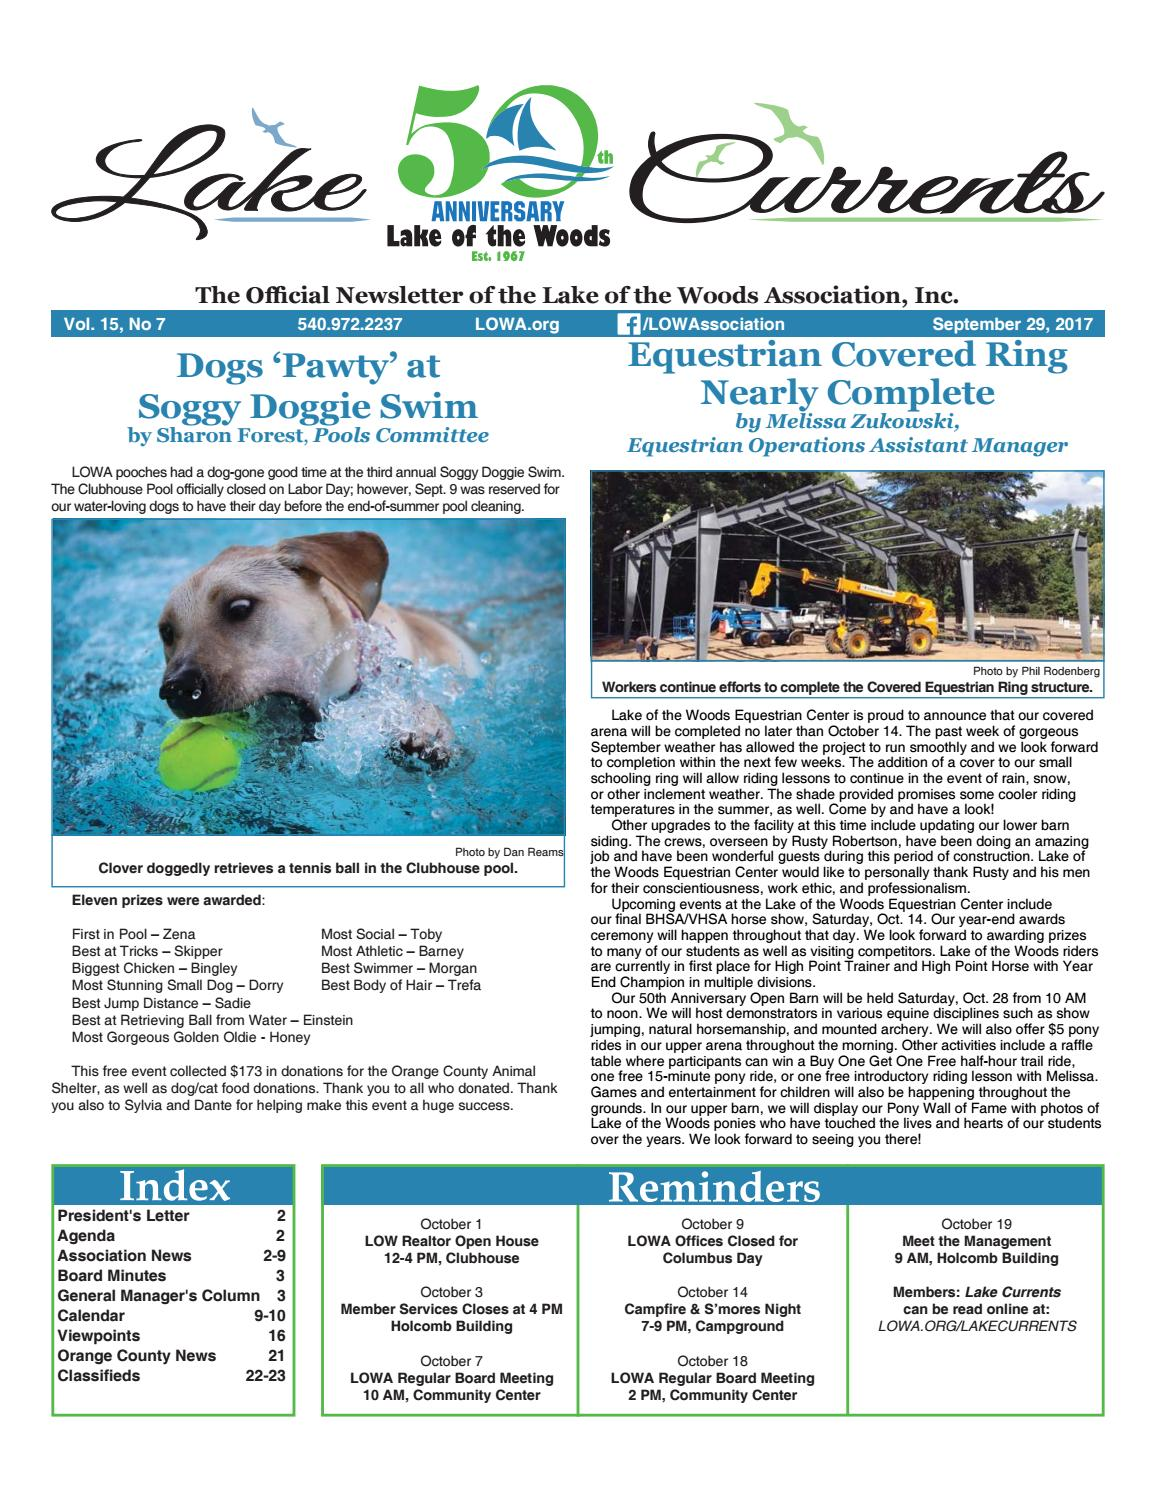 Lake Currents 09 29 2017 By Lake Of The Woods Association Issuu